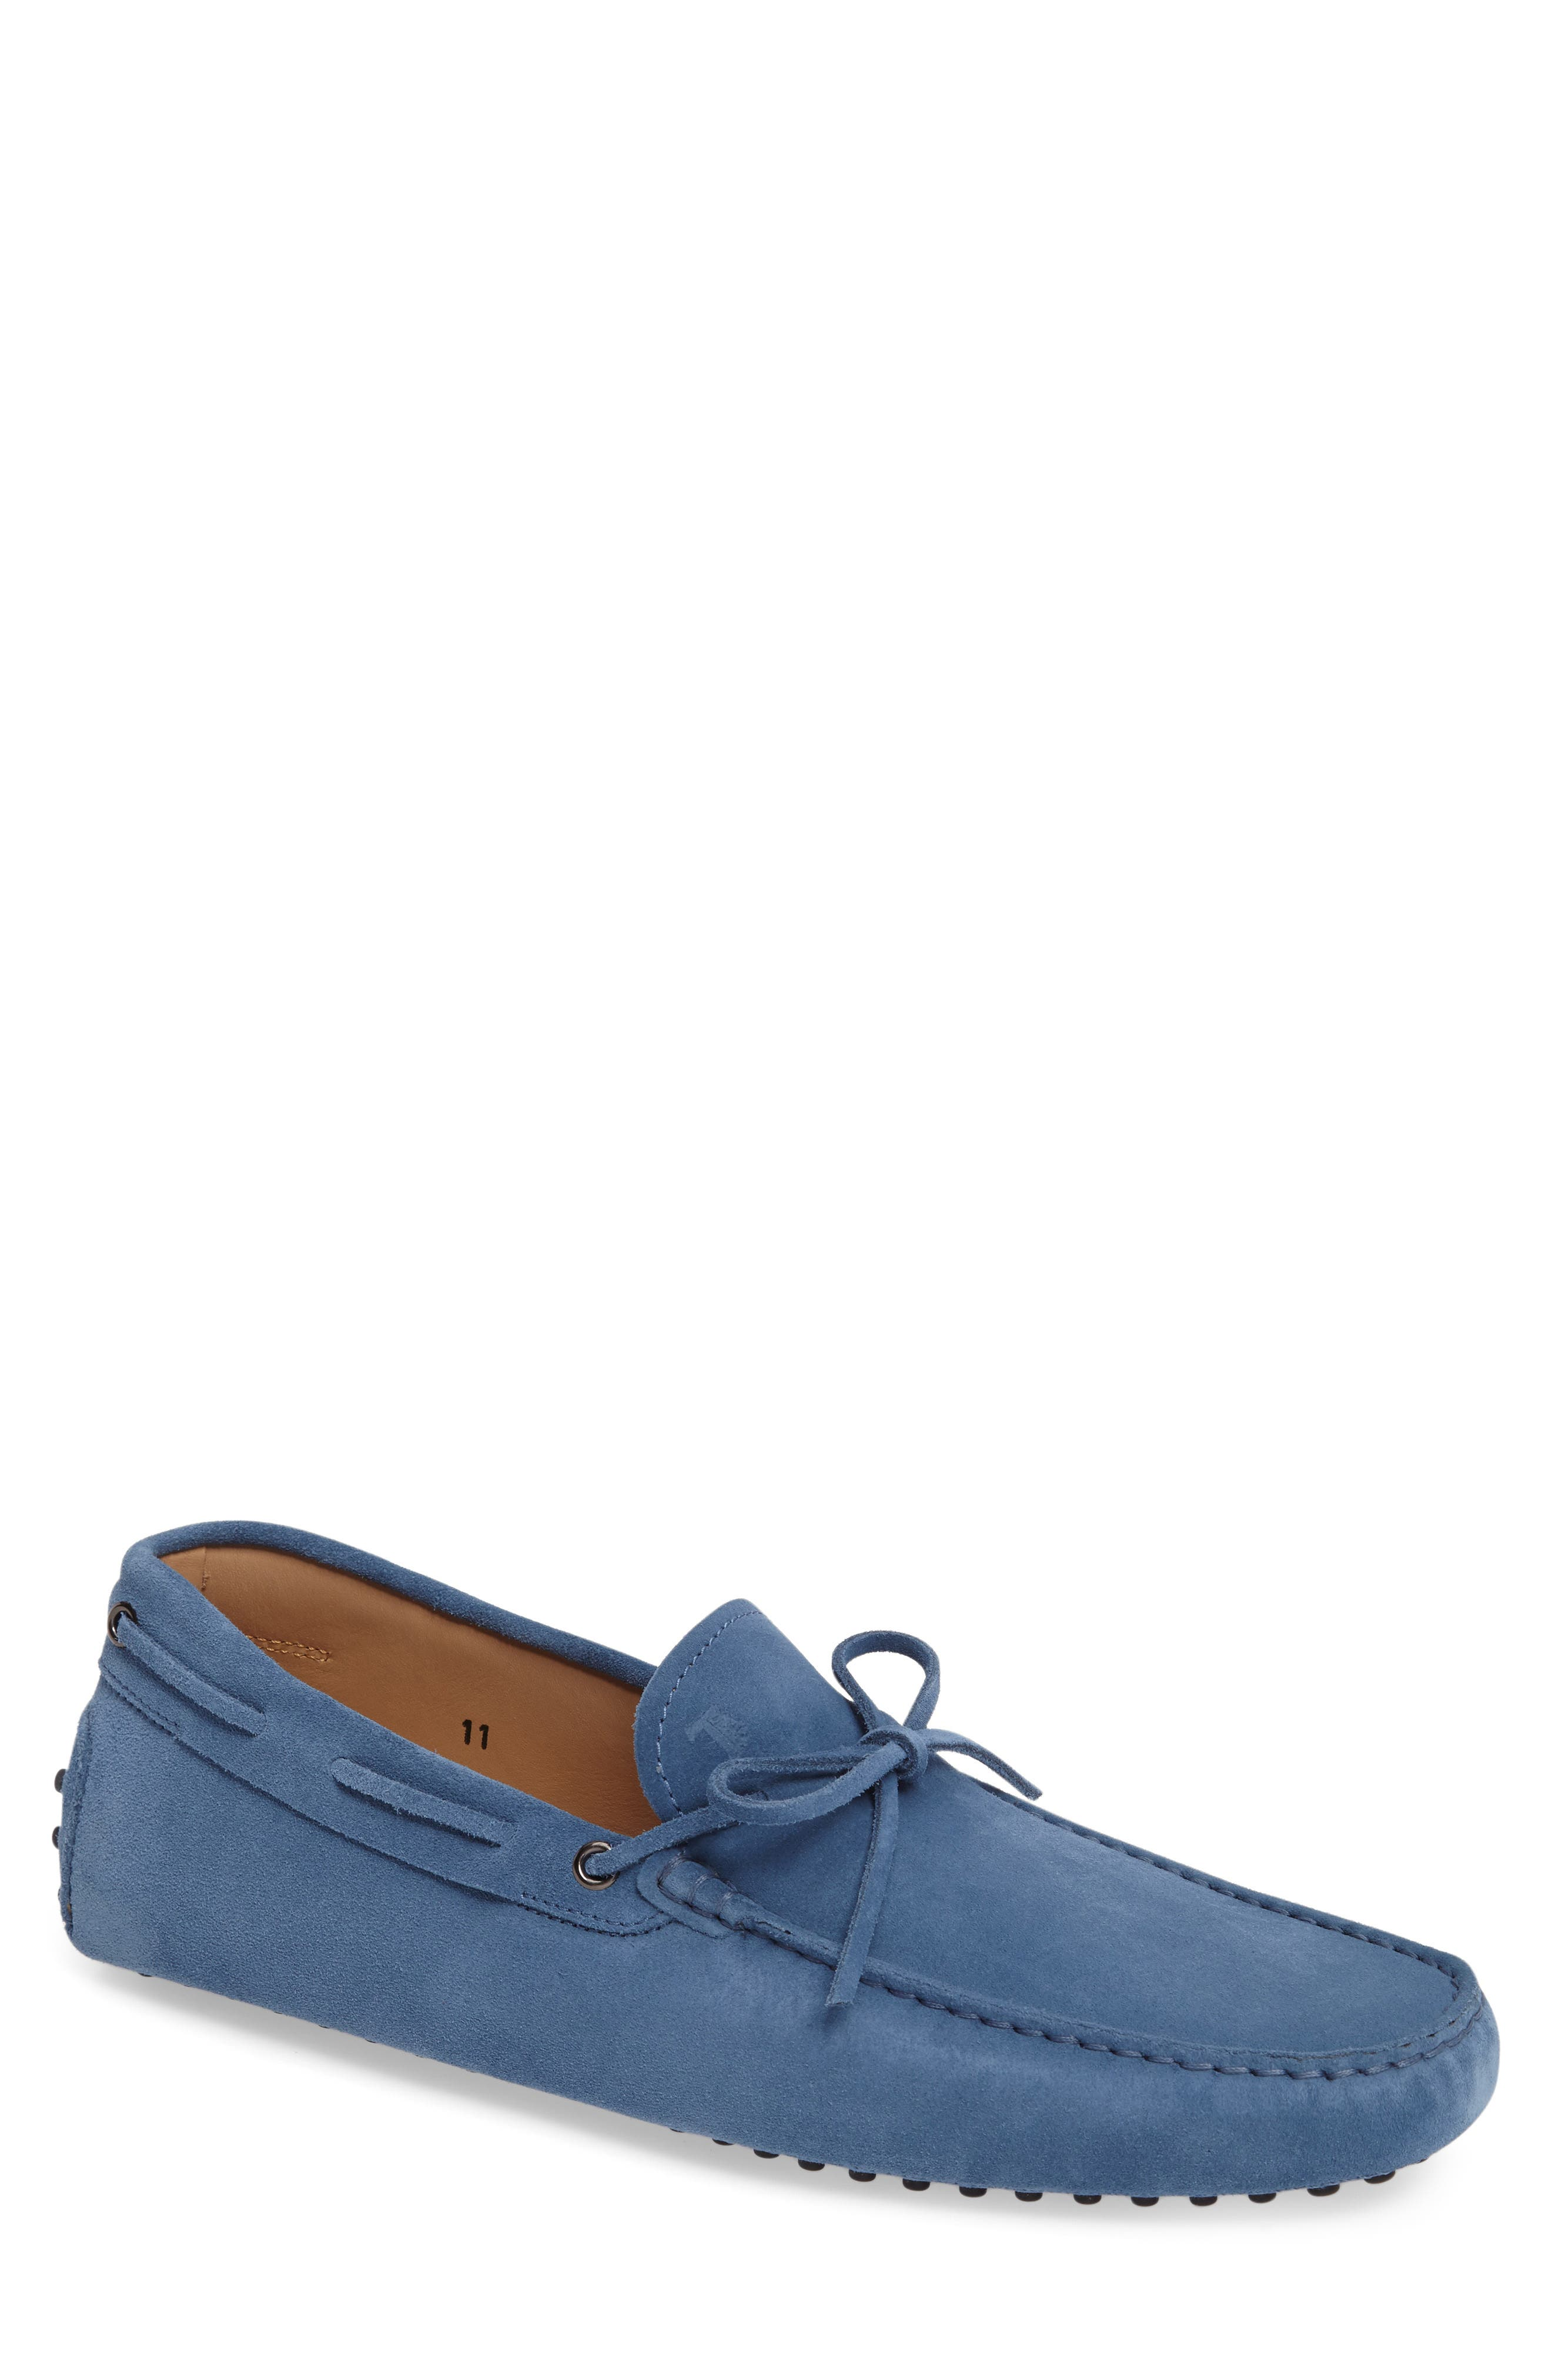 Gommini Tie Front Driving Moccasin,                             Main thumbnail 14, color,